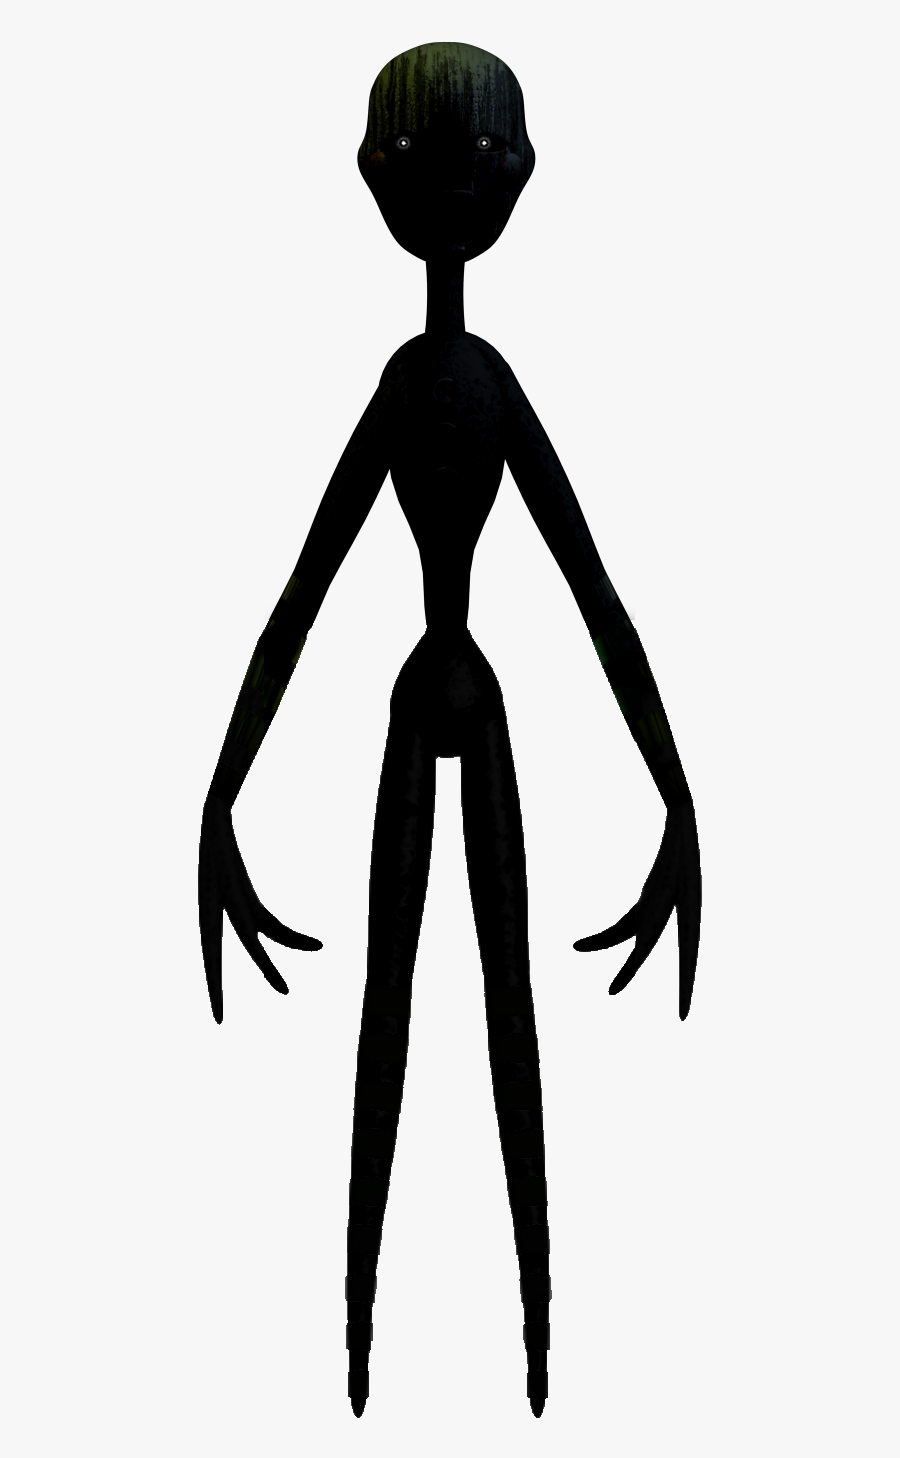 Marionette Drawing Full Body Huge Freebie Download - Five Nights At Freddy's 3 Puppet, Transparent Clipart